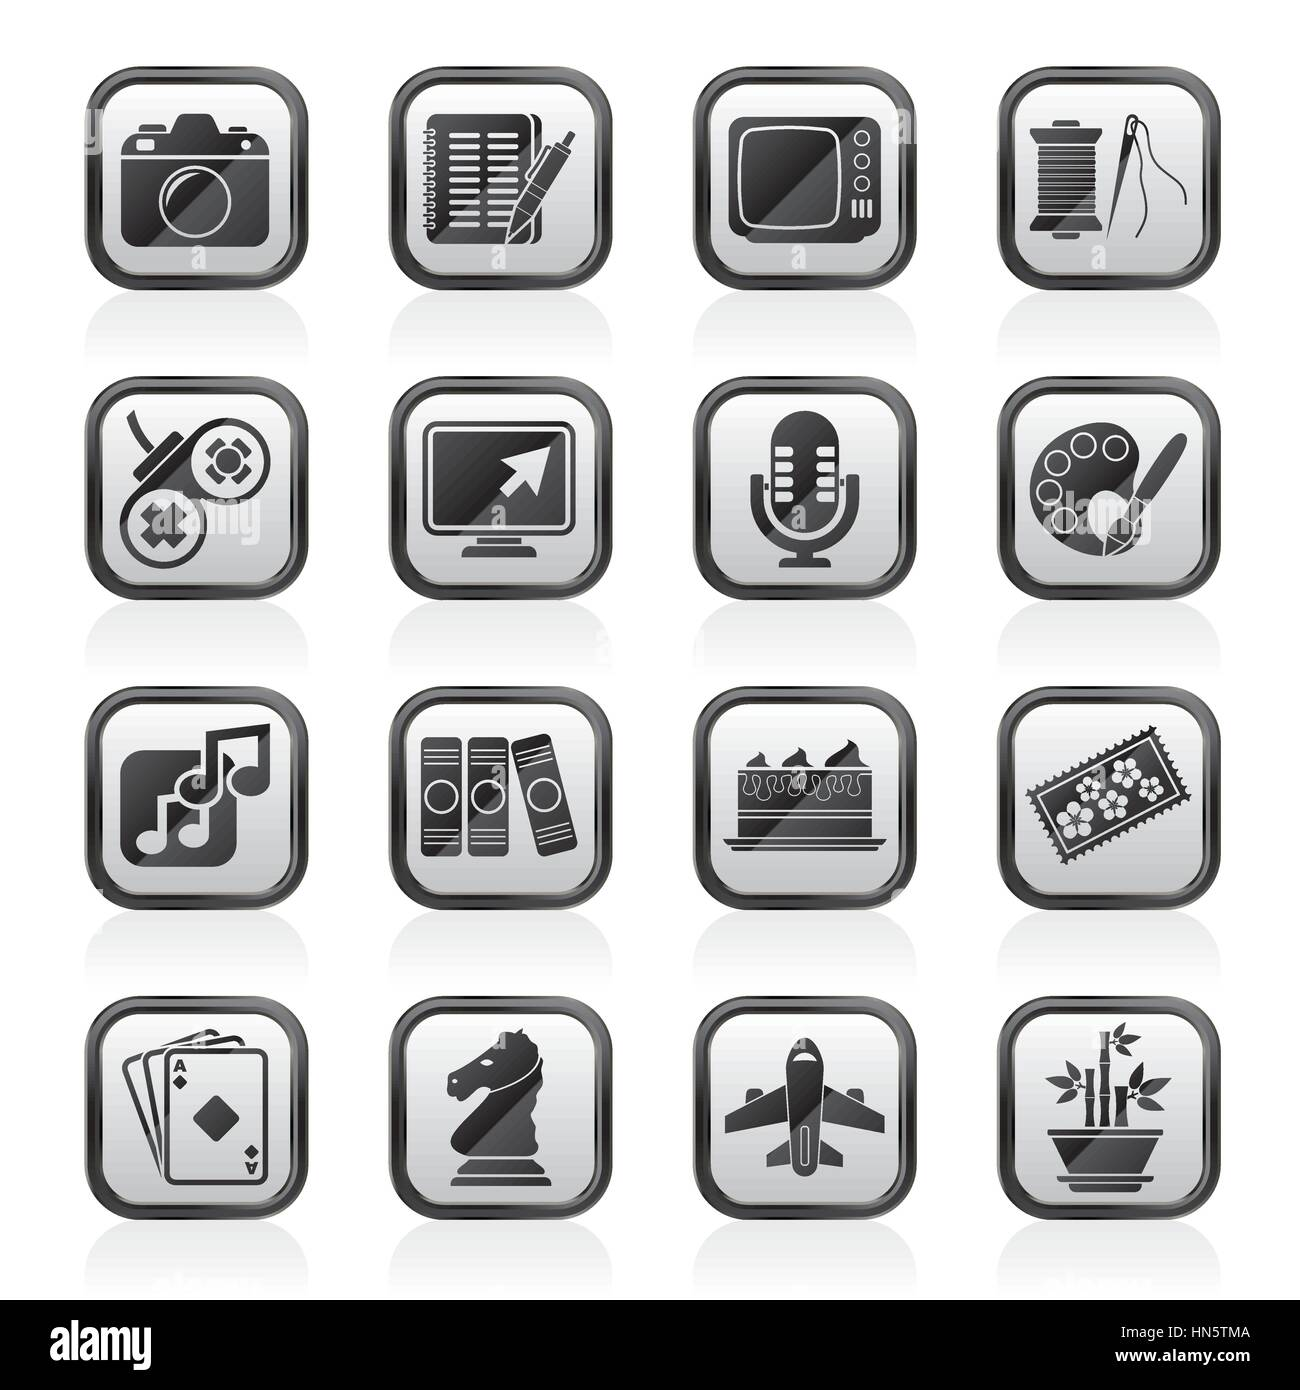 Hobbies and leisure Icons - Stock Image